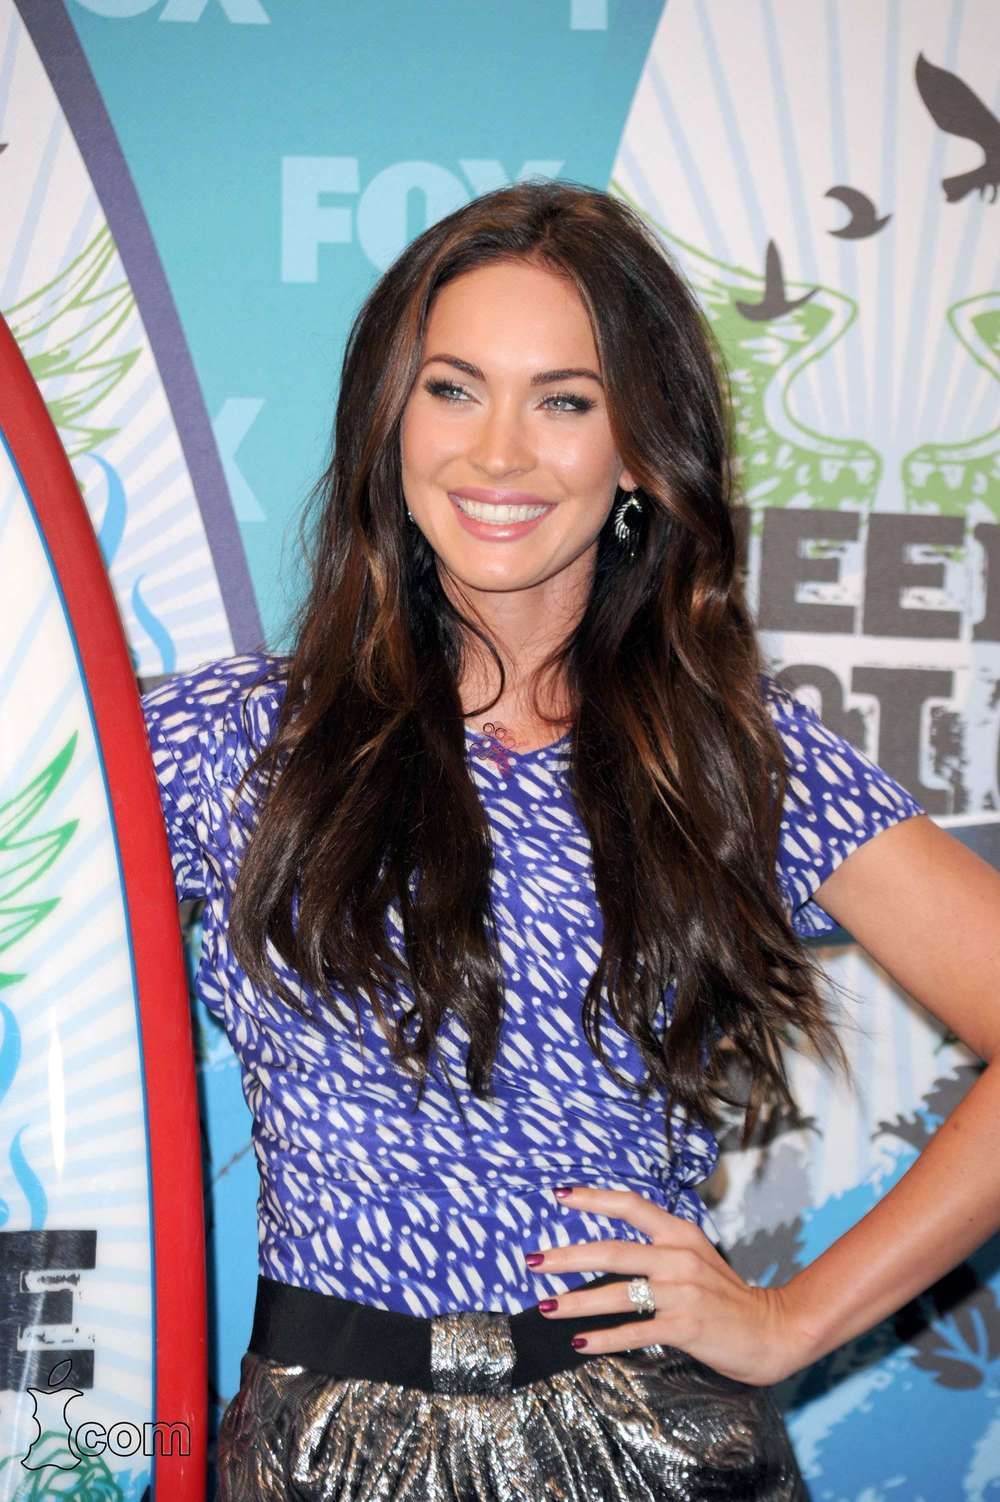 20100810_MFOX_TEENCHOICEAWARDS_AJ_MB_01.jpg